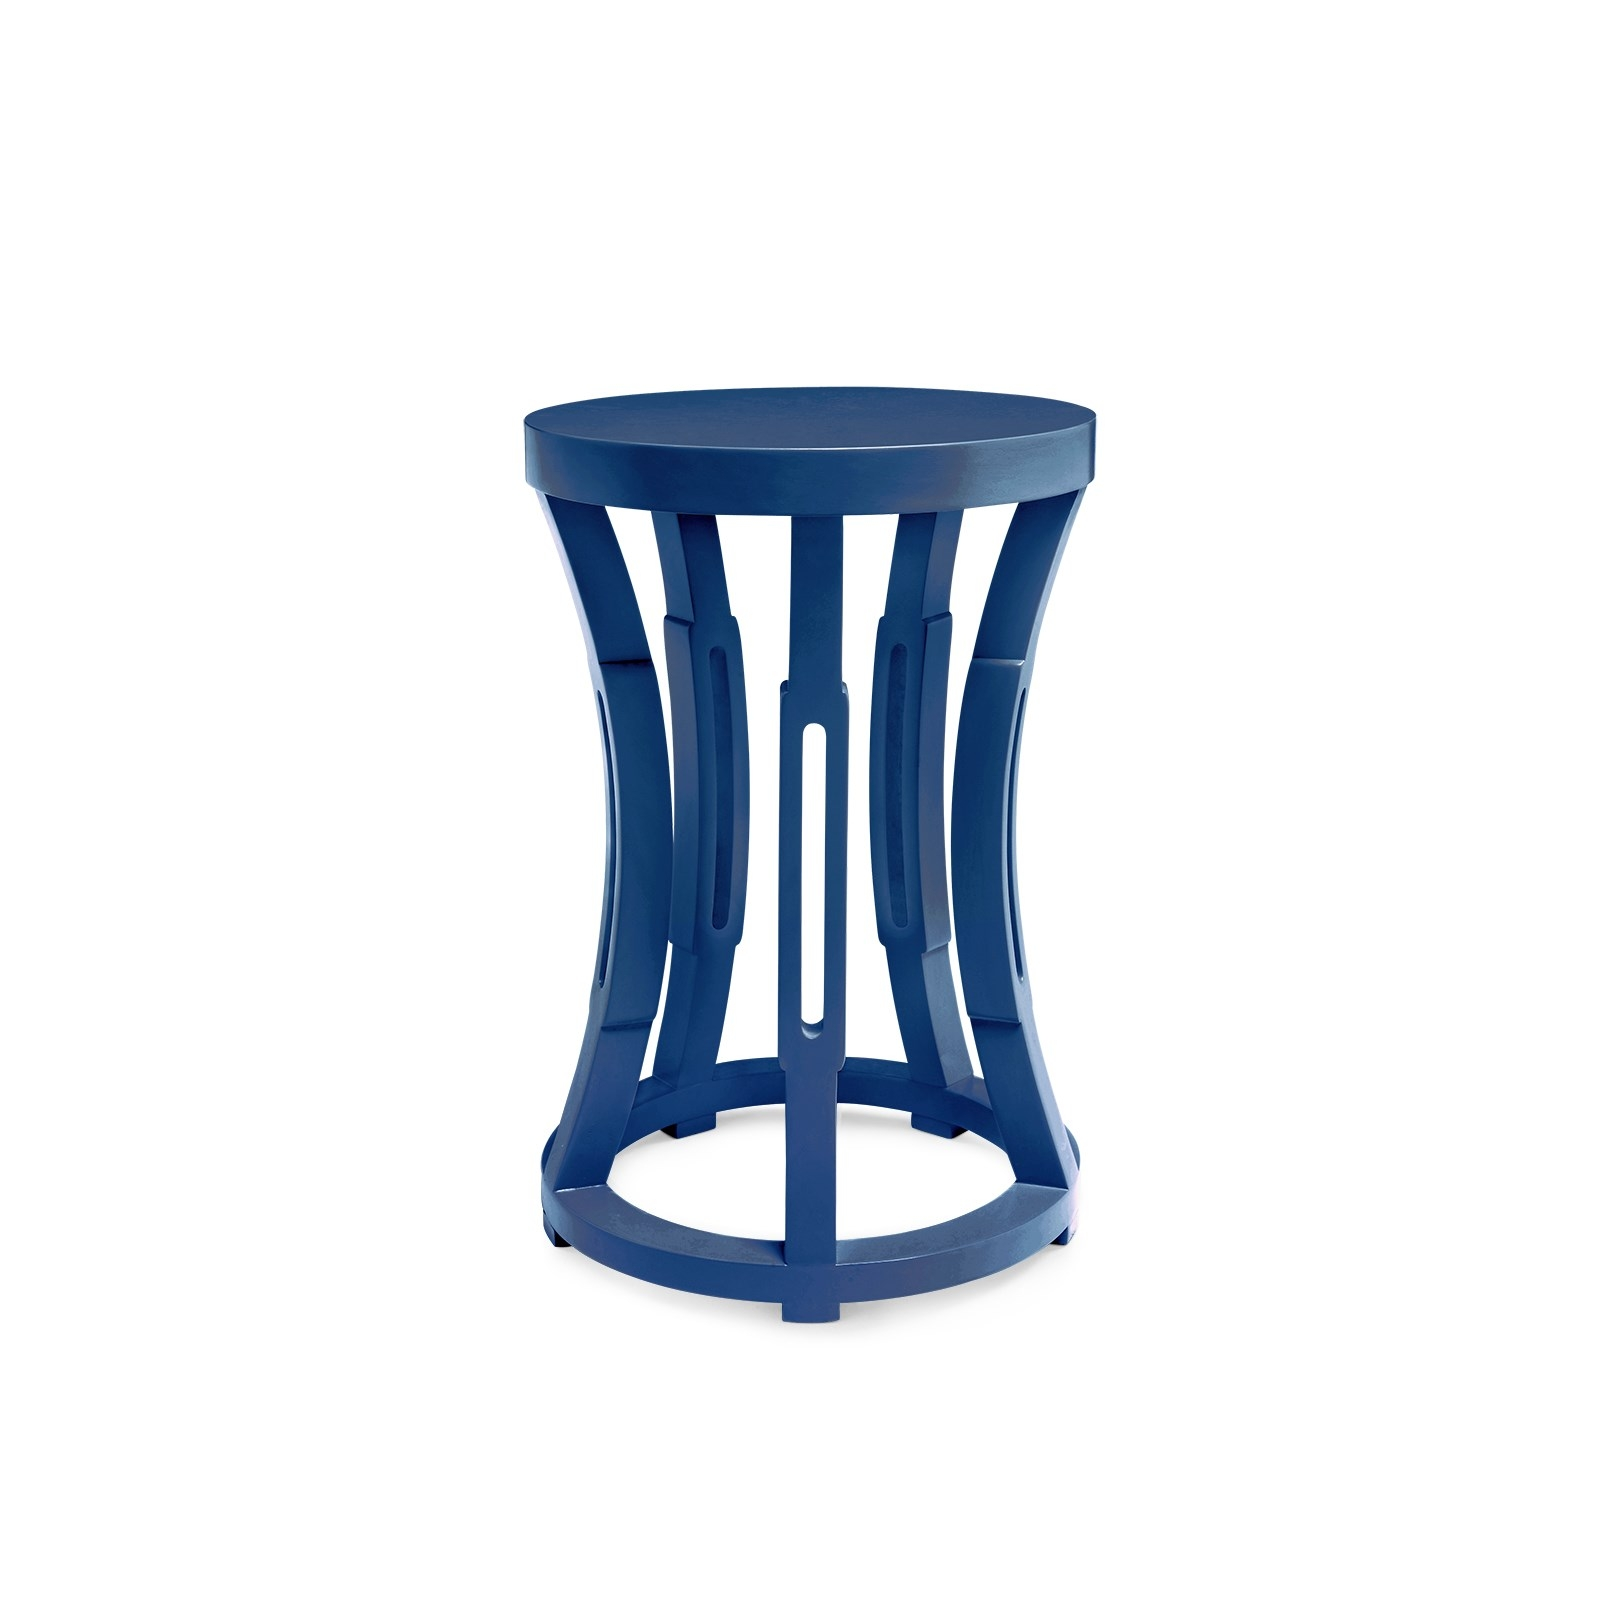 hourglass stoolside table navy blue bungalow throughout side plan accent architecture nantucket drawer with regard narrow white bedside cabinets target changing inch round outdoor